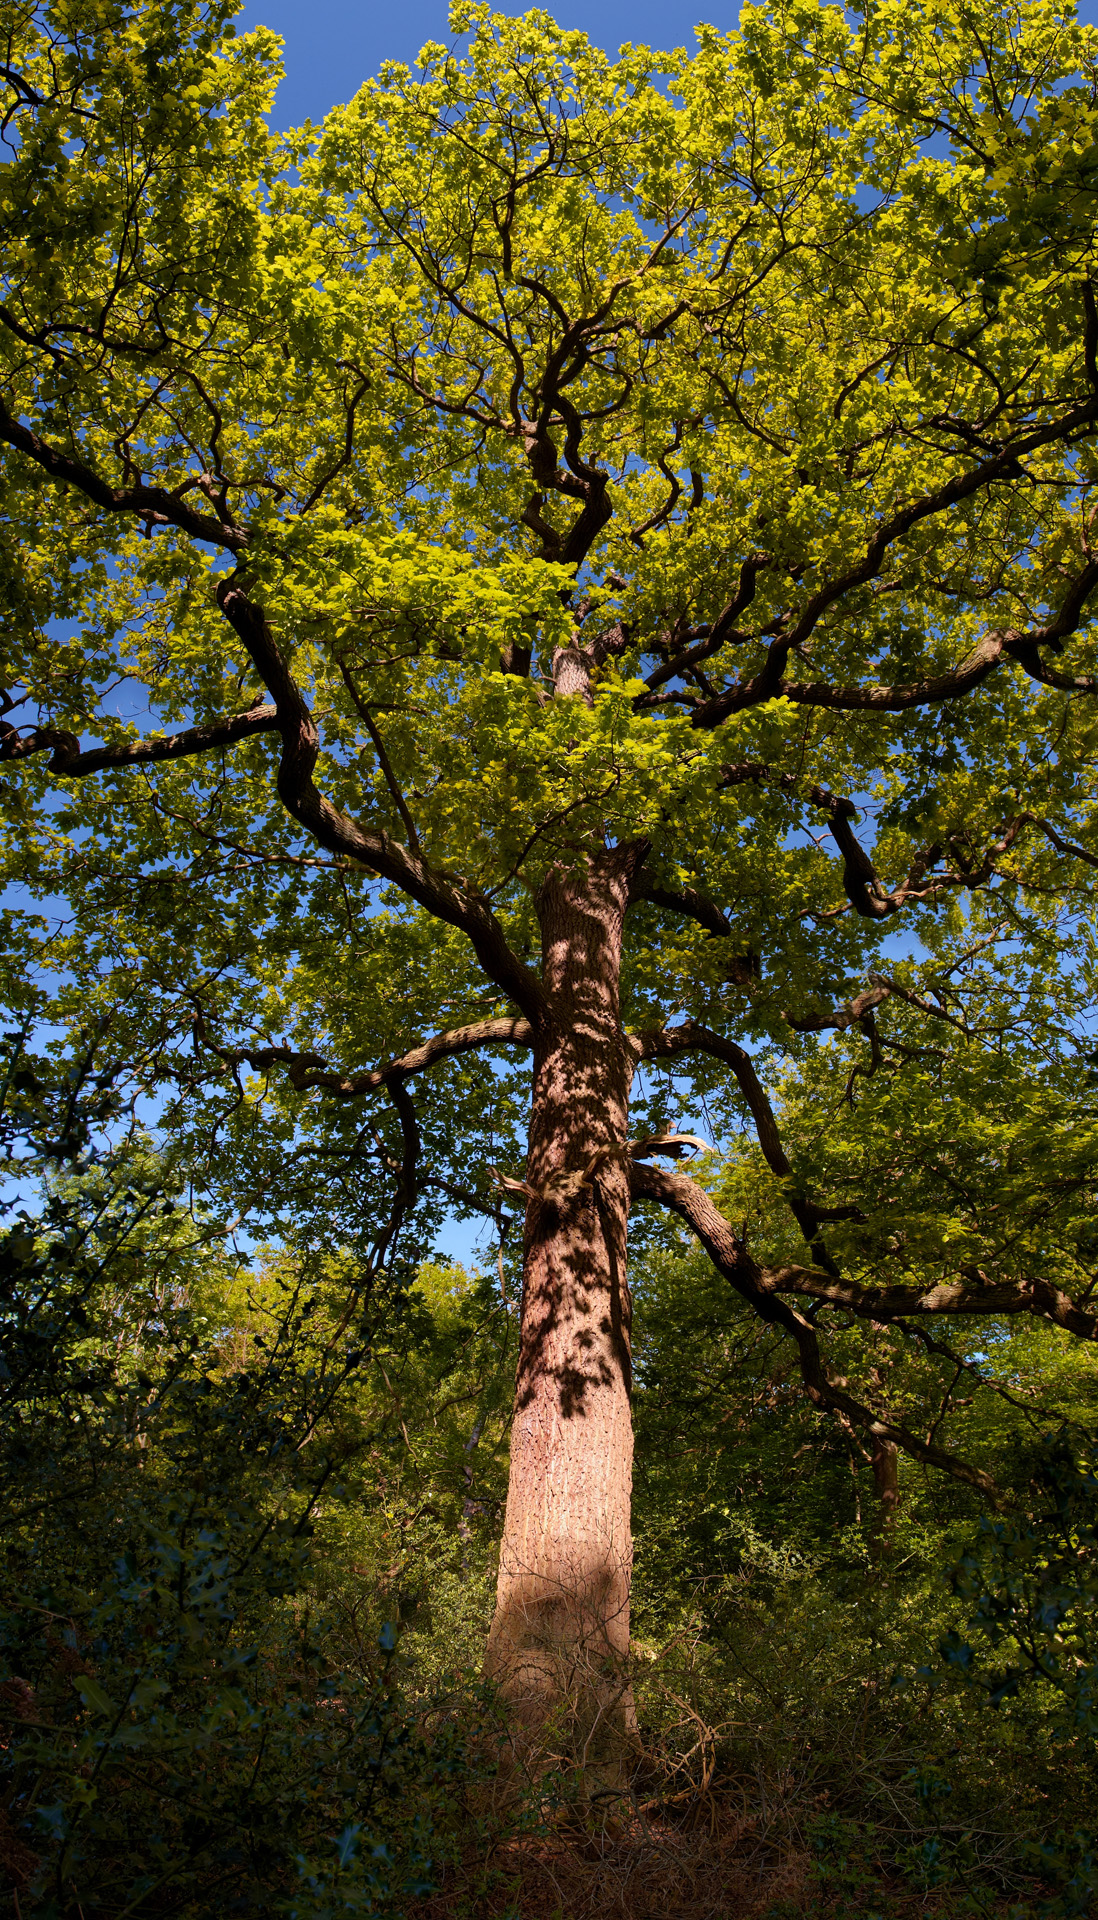 Tall Oak, Burnham Beeches ancient woodland